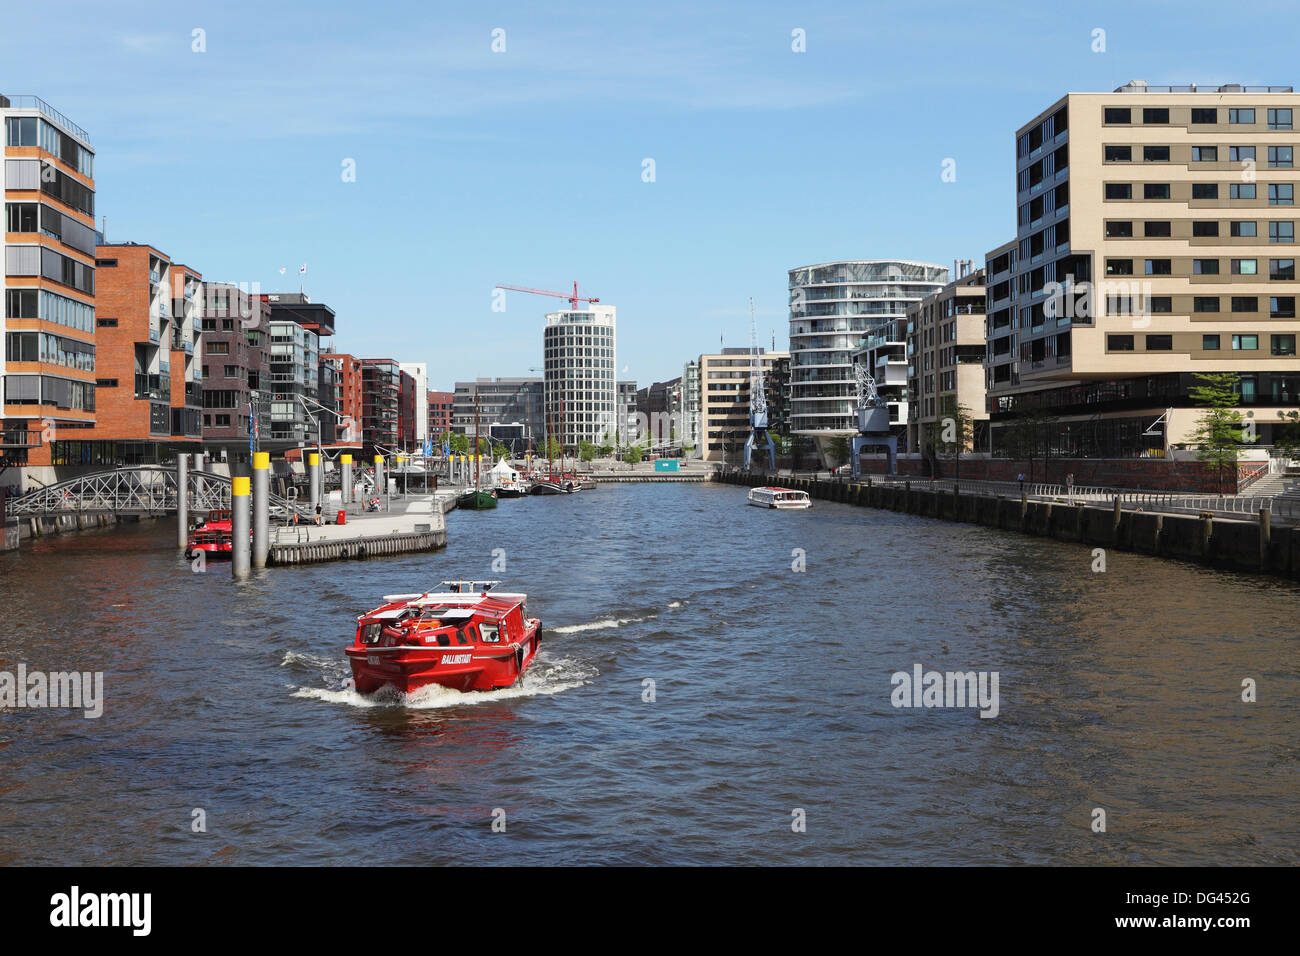 A boat on a canal in the recently developed HafenCity district of Hamburg, Germany, Europe - Stock Image